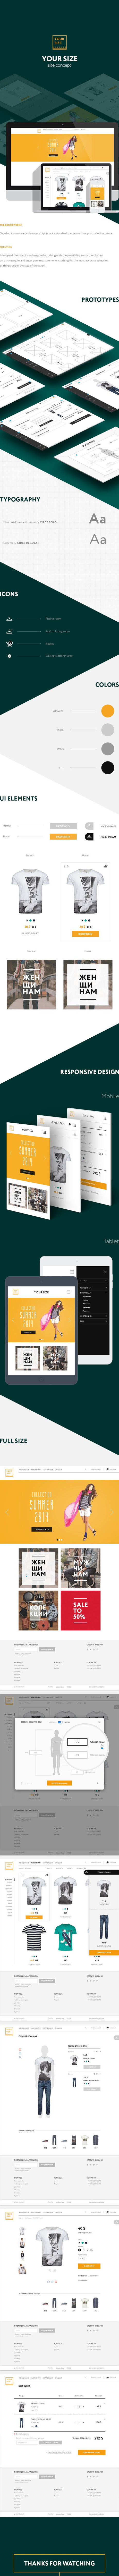 Collection of color palettes photoshop for ui designs web3canvas - Your Size Site Concept By Illya Zorya Via Behance